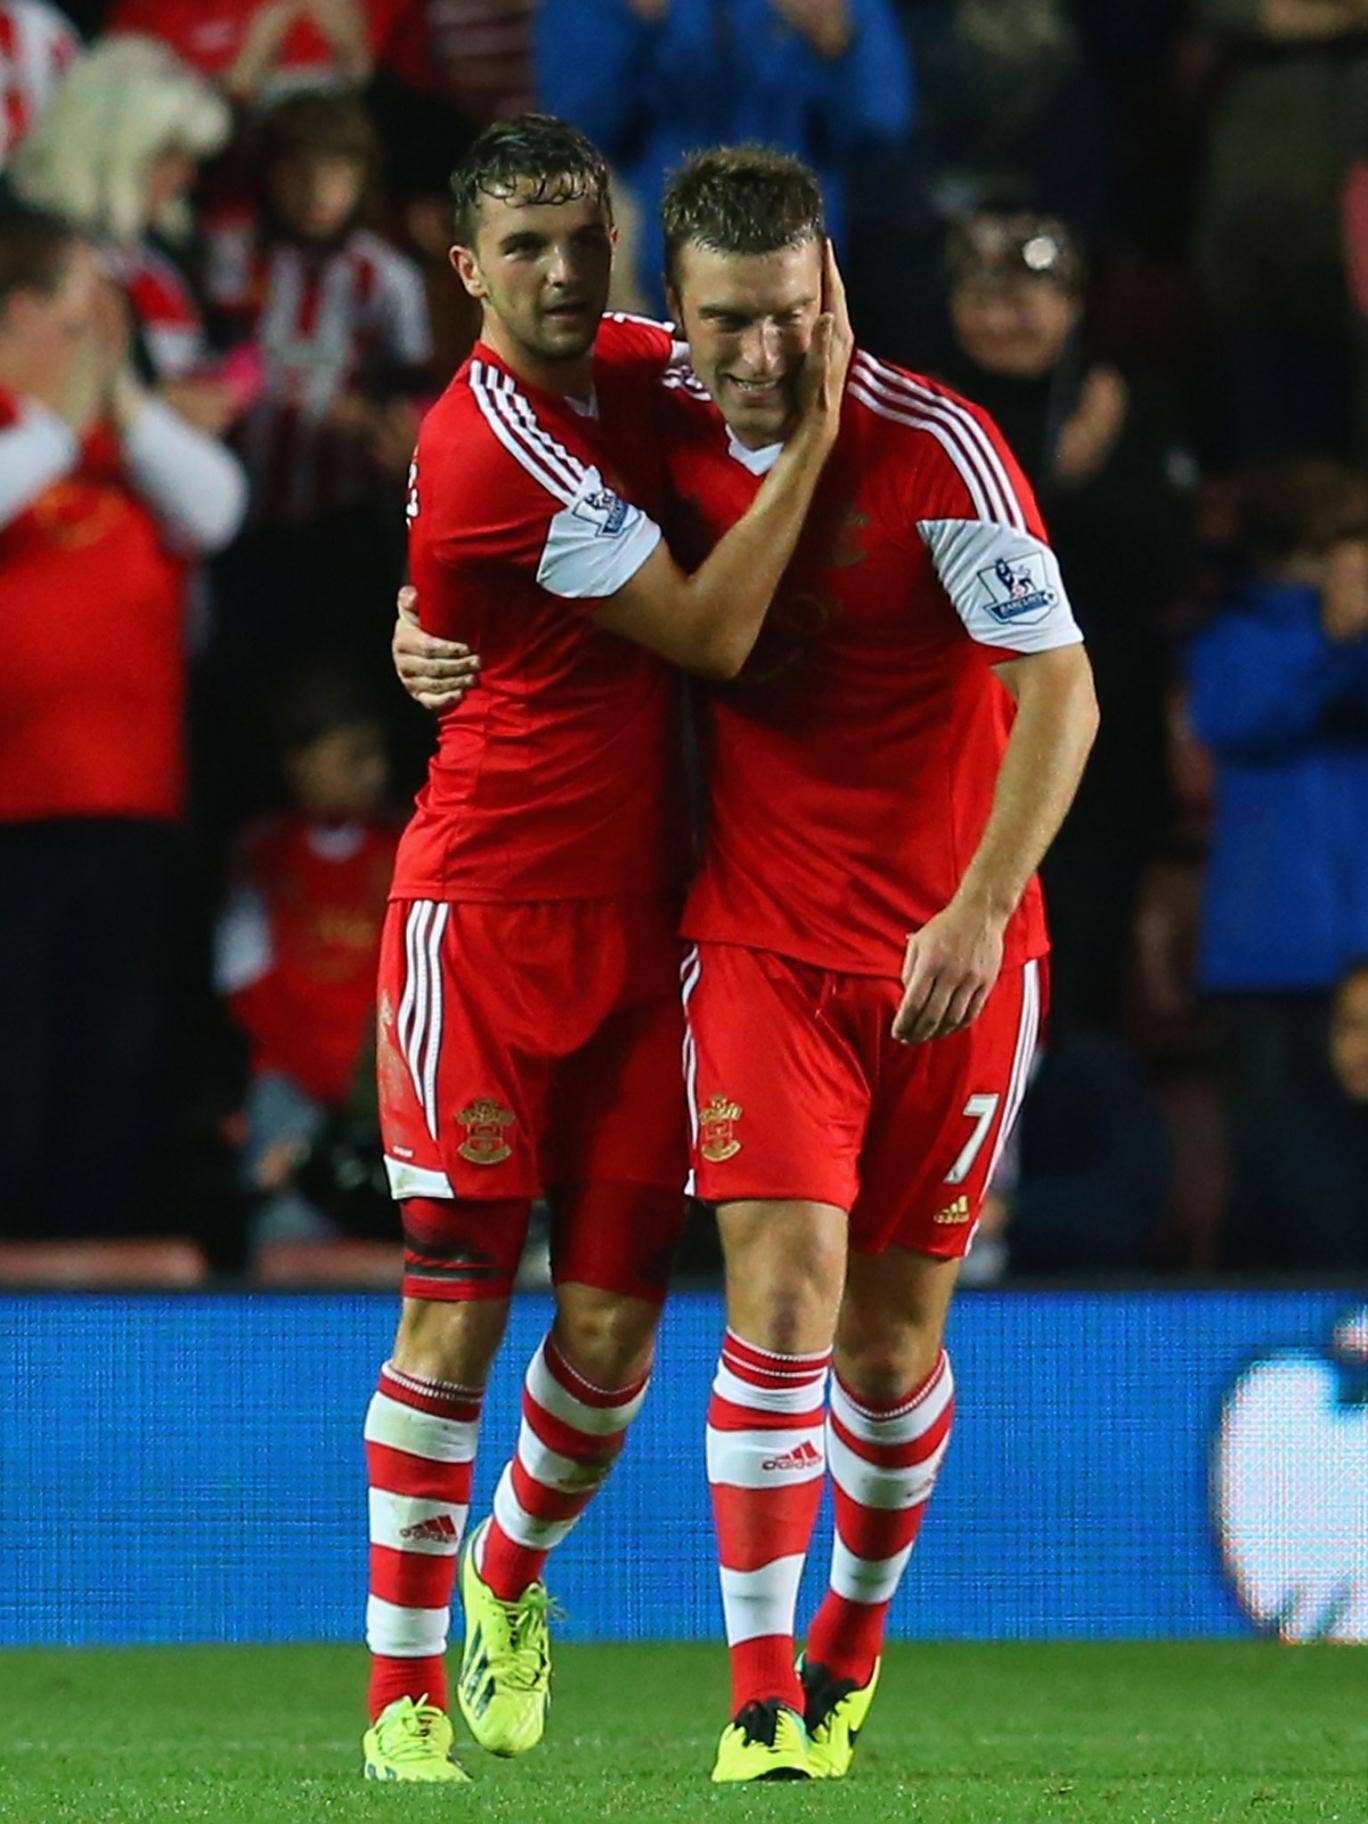 Jay Rodriguez will join Southampton team-mate Rickie Lambert in the England squad